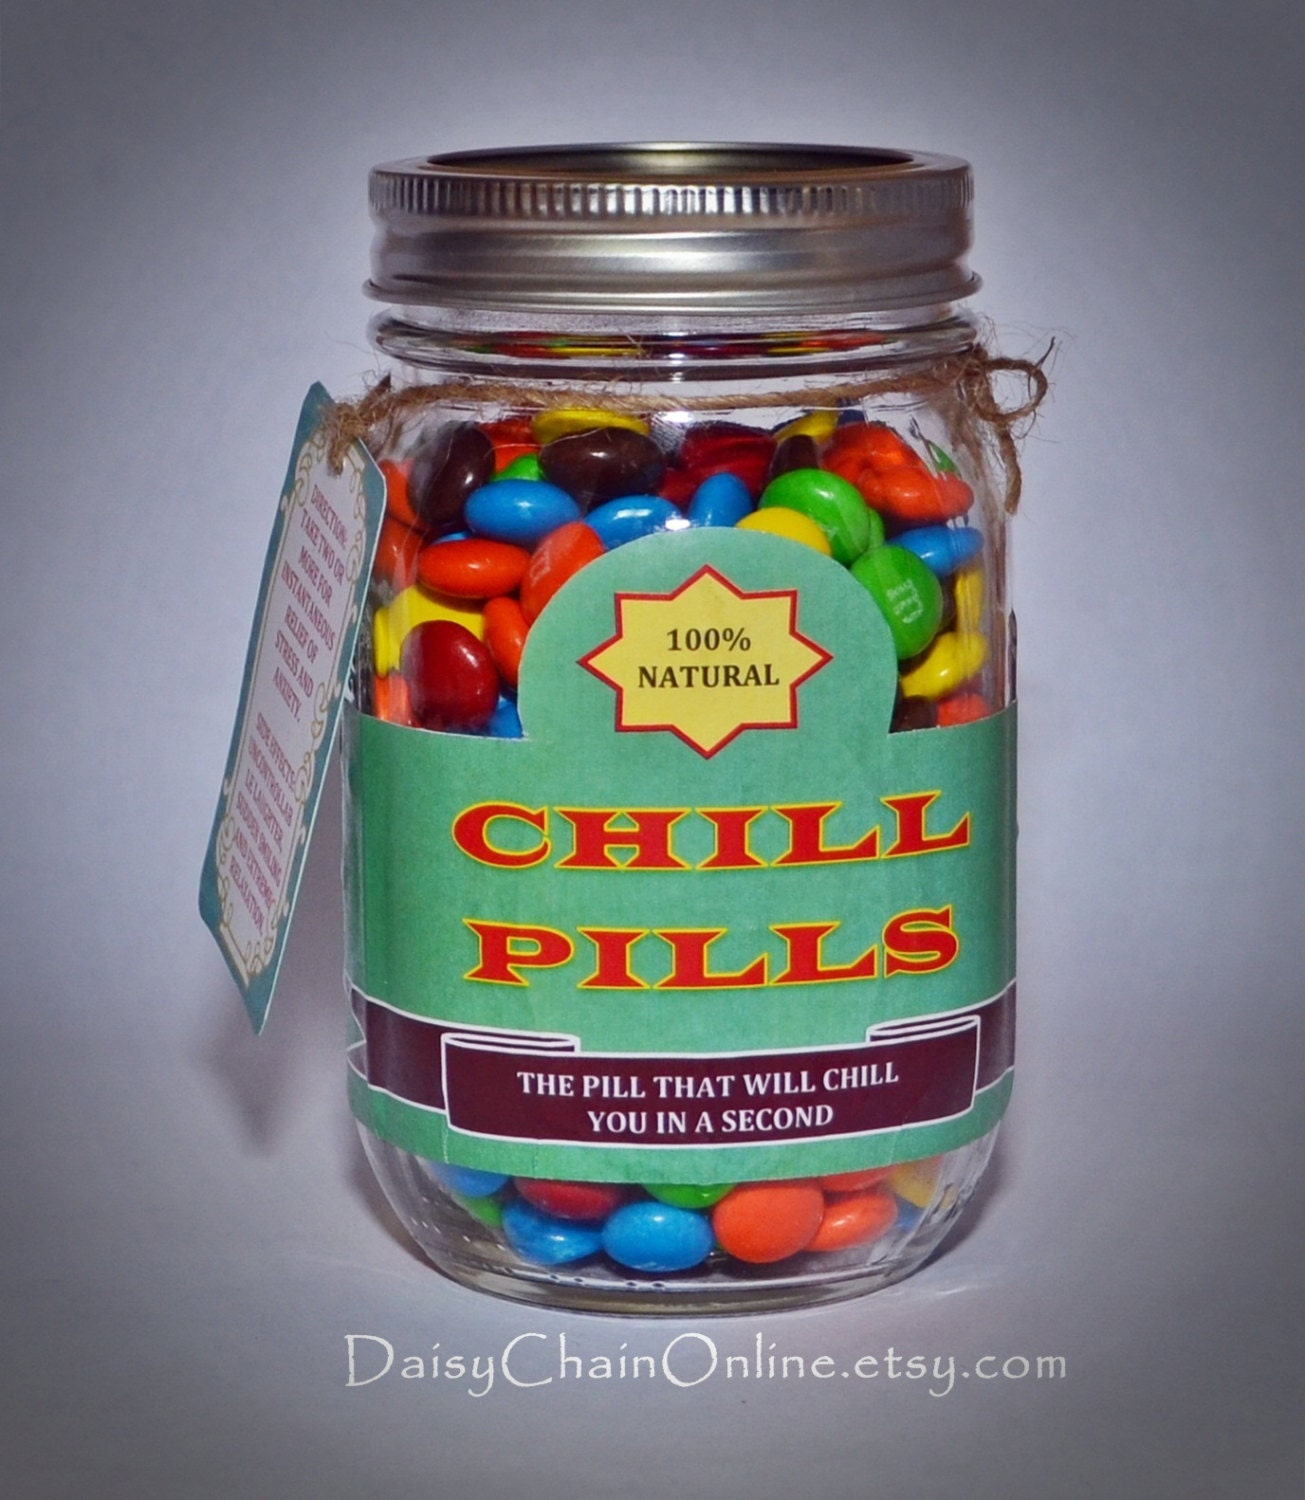 Printable Labels For Diy A Jar Of Chill Pill Diy